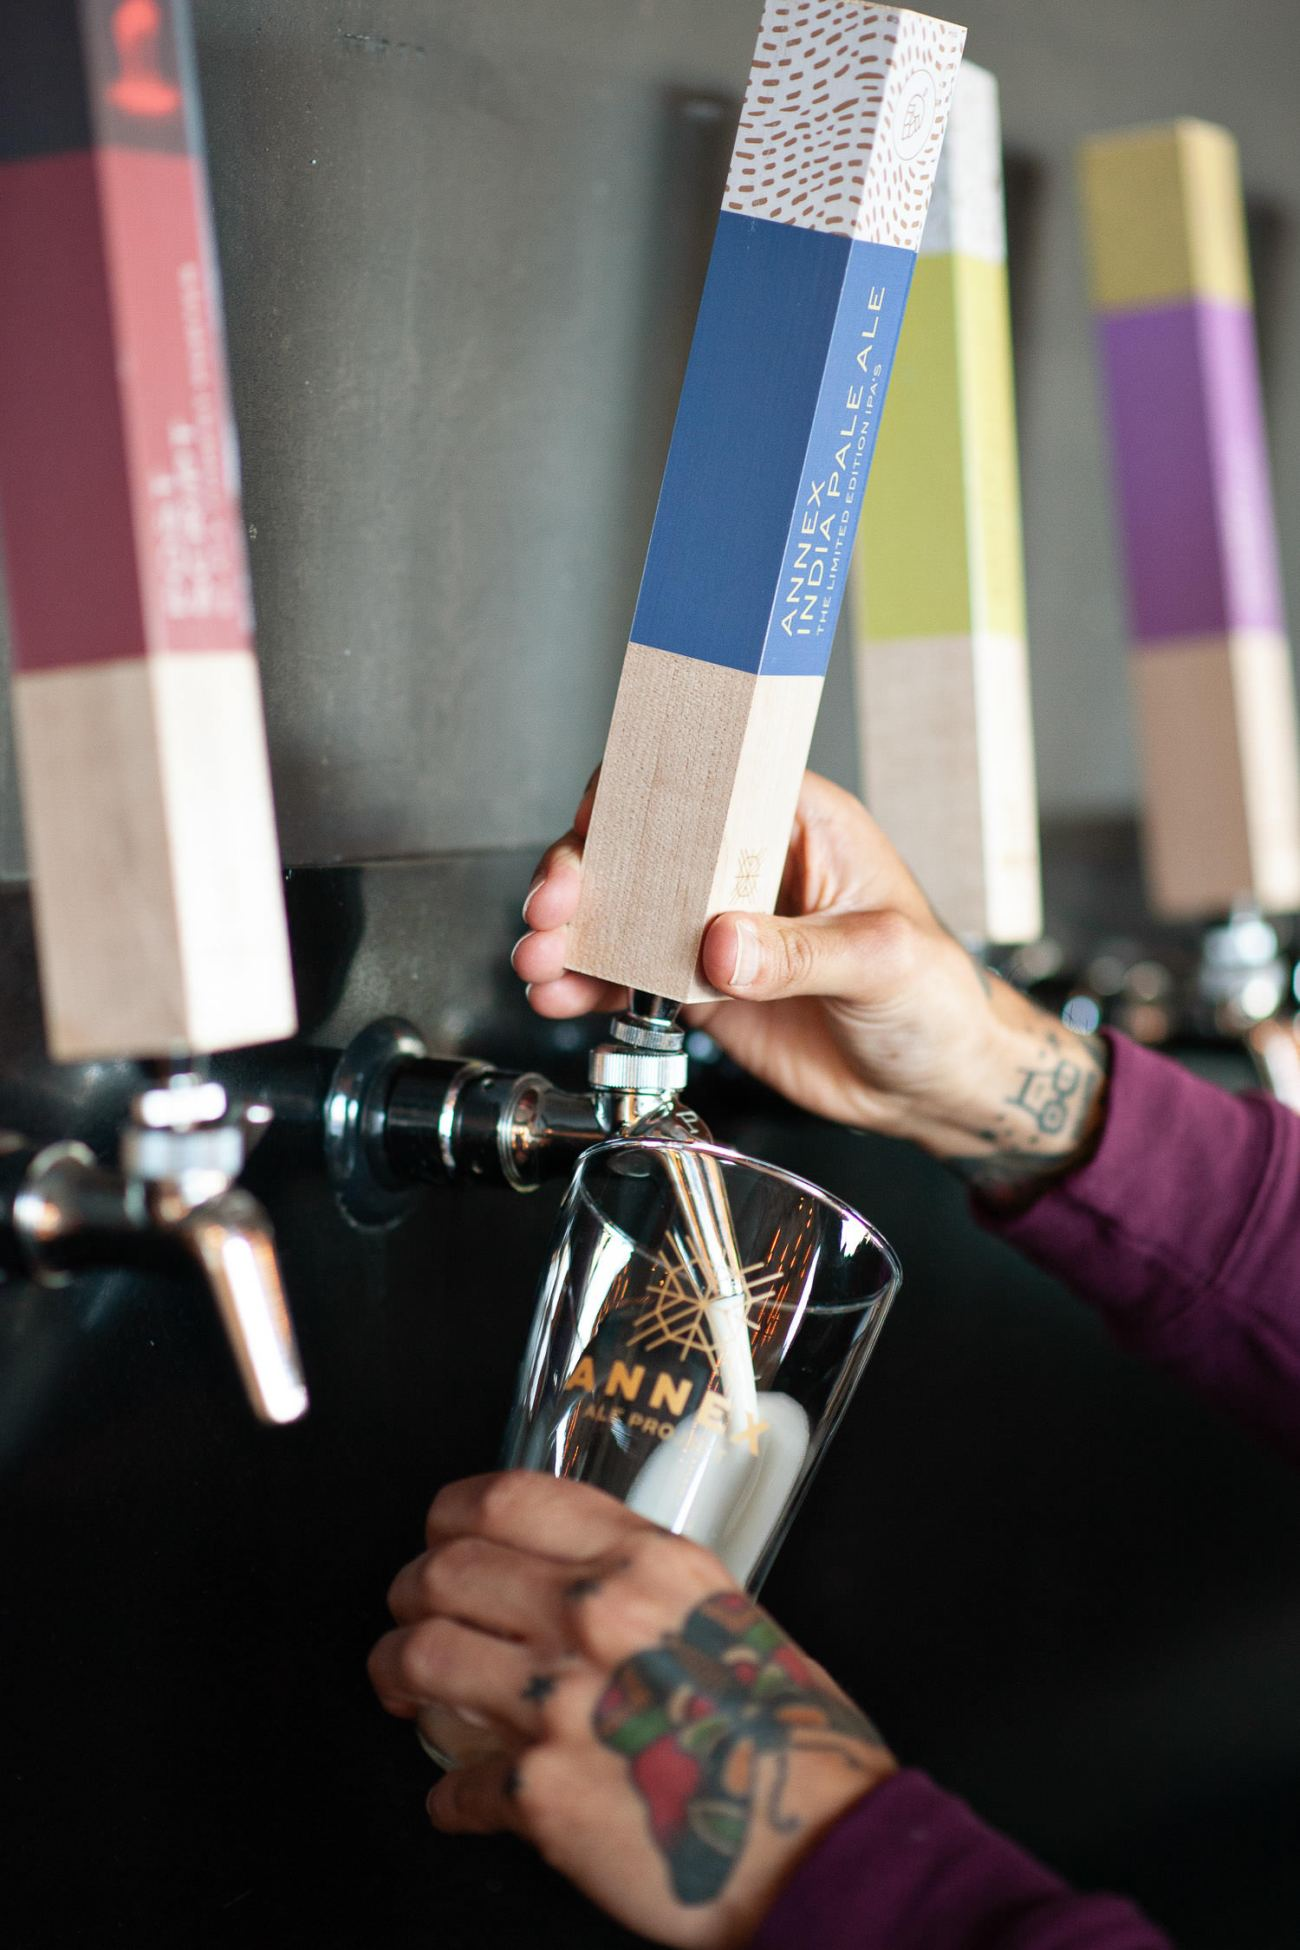 Each holiday mini session includes a $25 gift card from Annex Ale Project